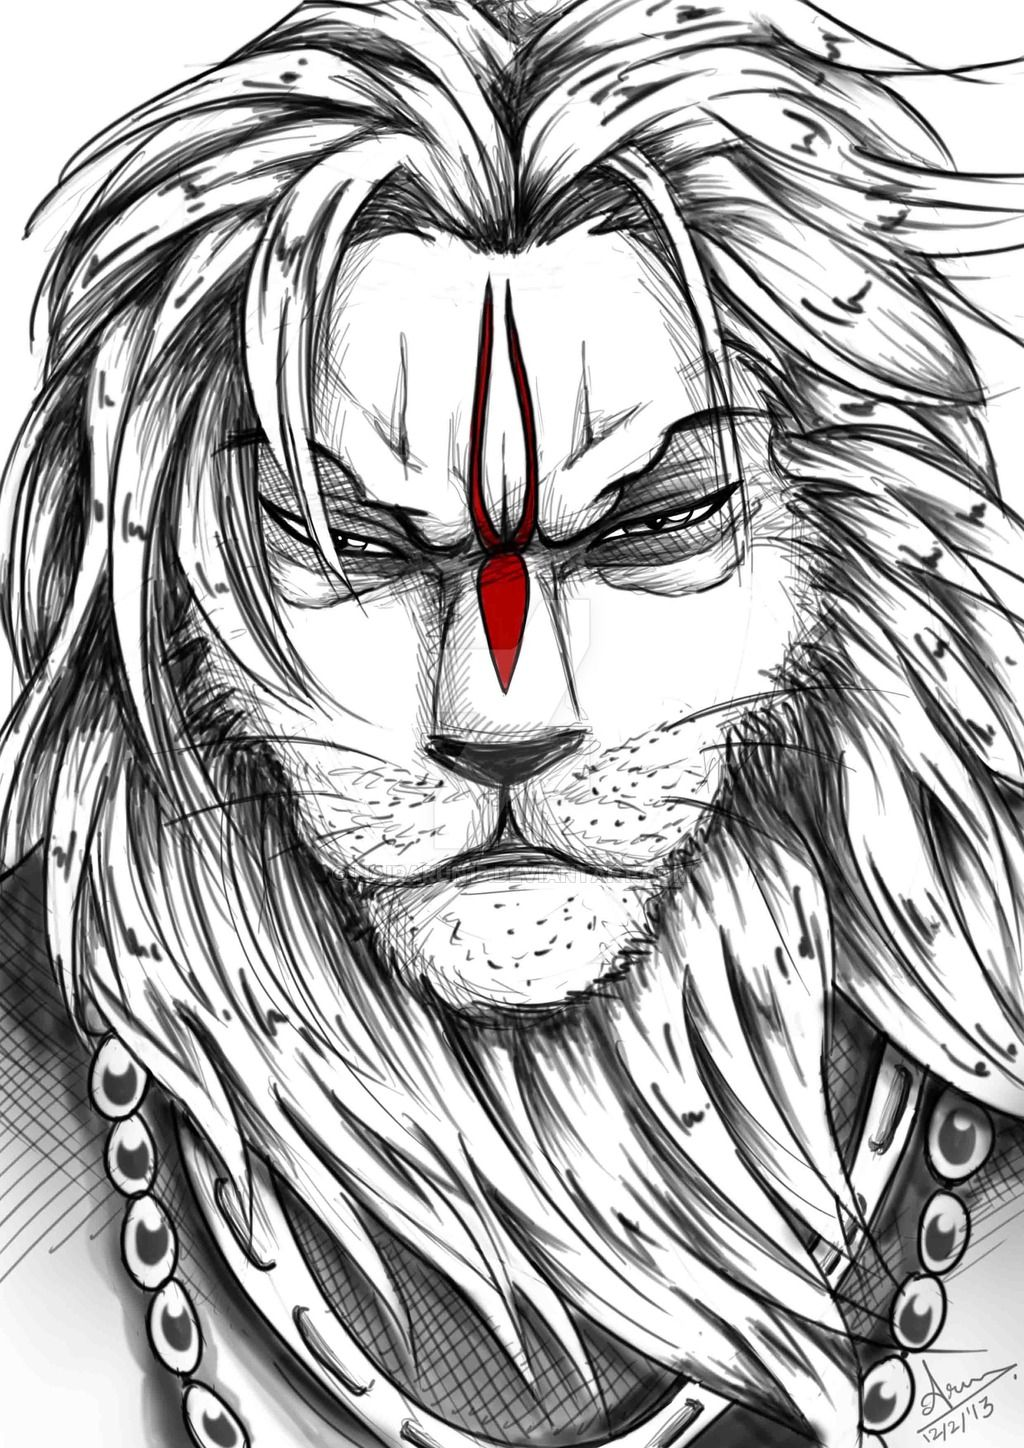 Prince kumar kha hanuman tattoo shiva tattoo lord shiva hd images krishna images